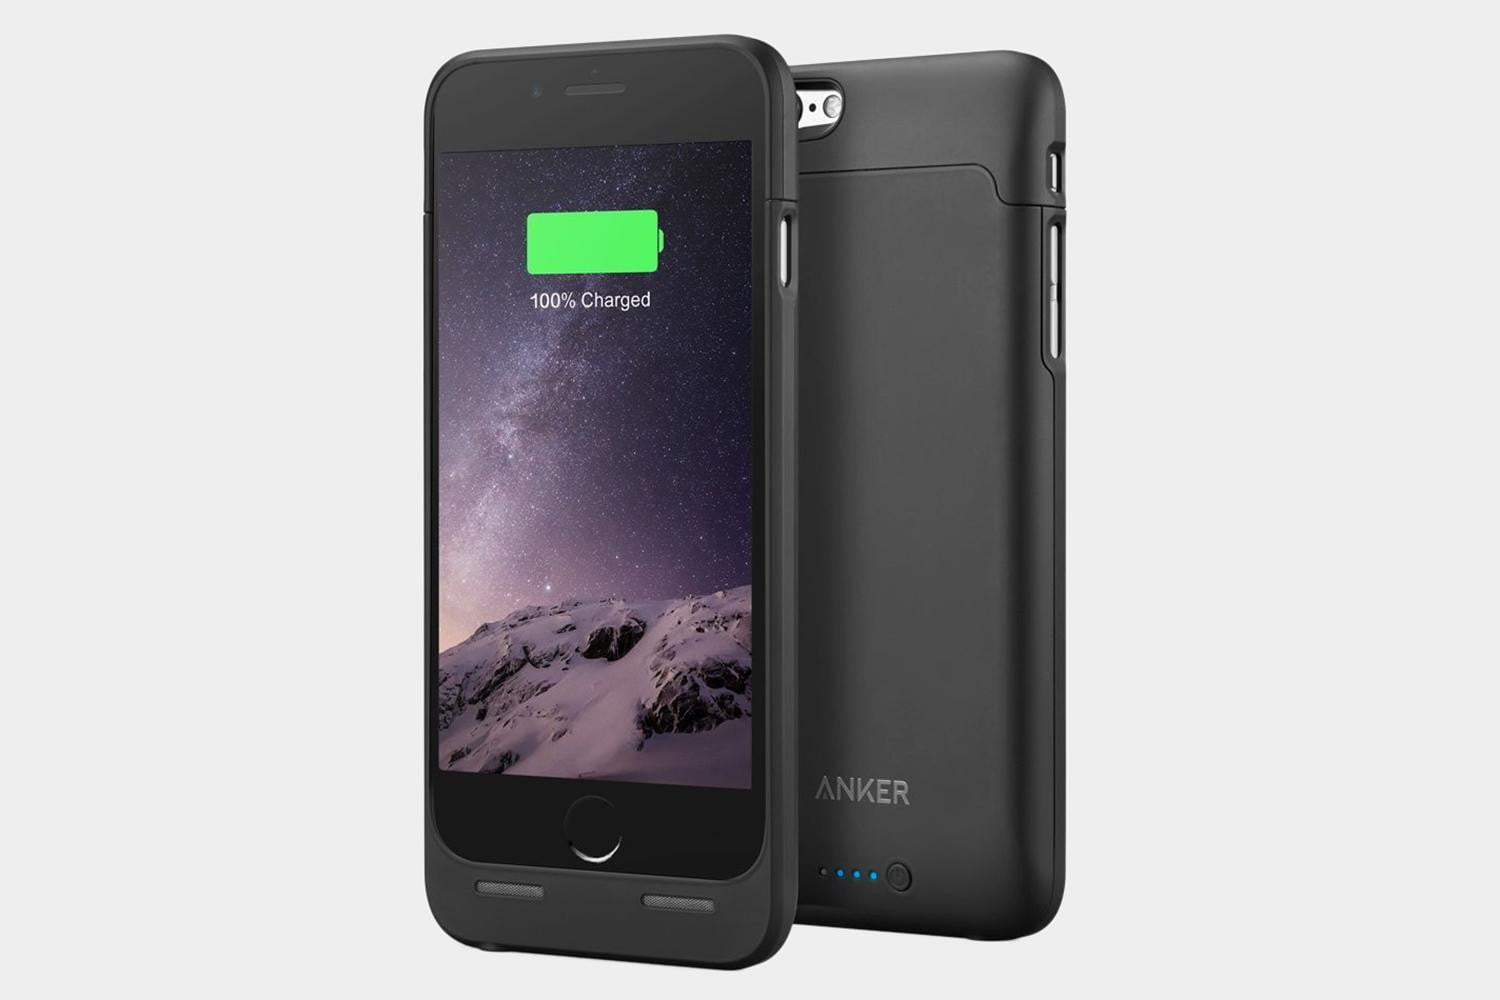 reputable site e3ad8 f3a09 10 Best iPhone 6 Battery Cases   Digital Trends